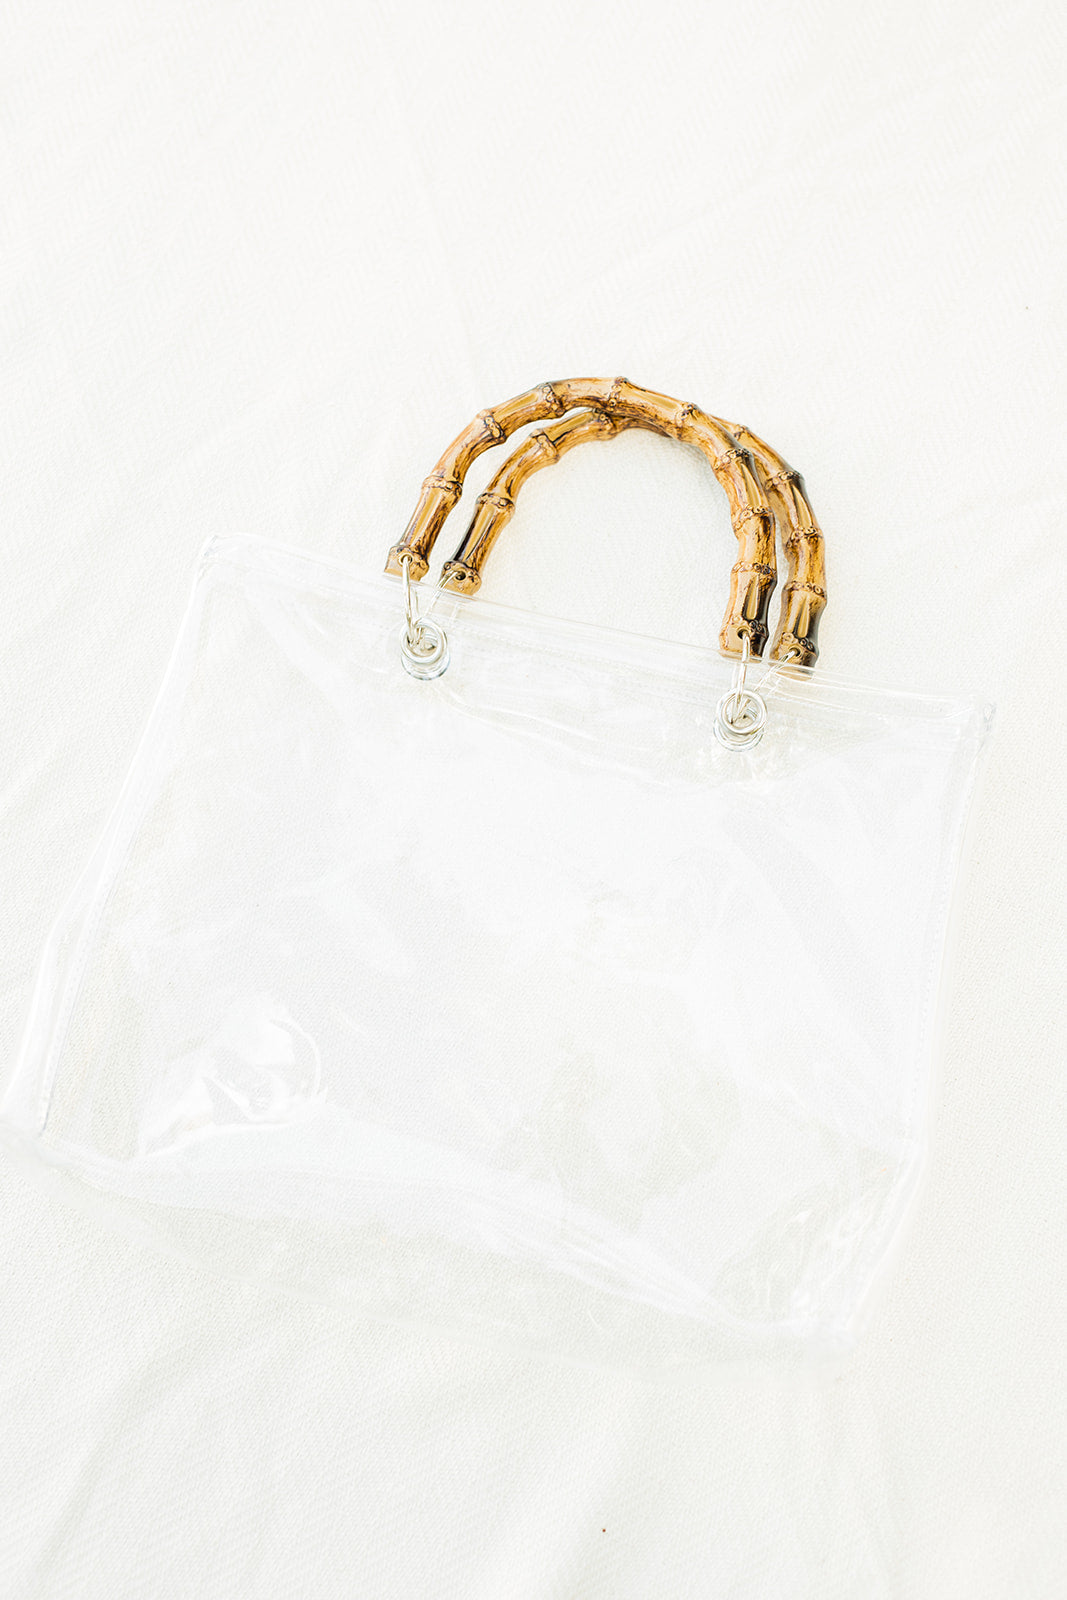 Venice Beach Clear Tote - The Beach Bride by Chic Parisien, a destination for beach weddings, bachelorettes and honeymoons